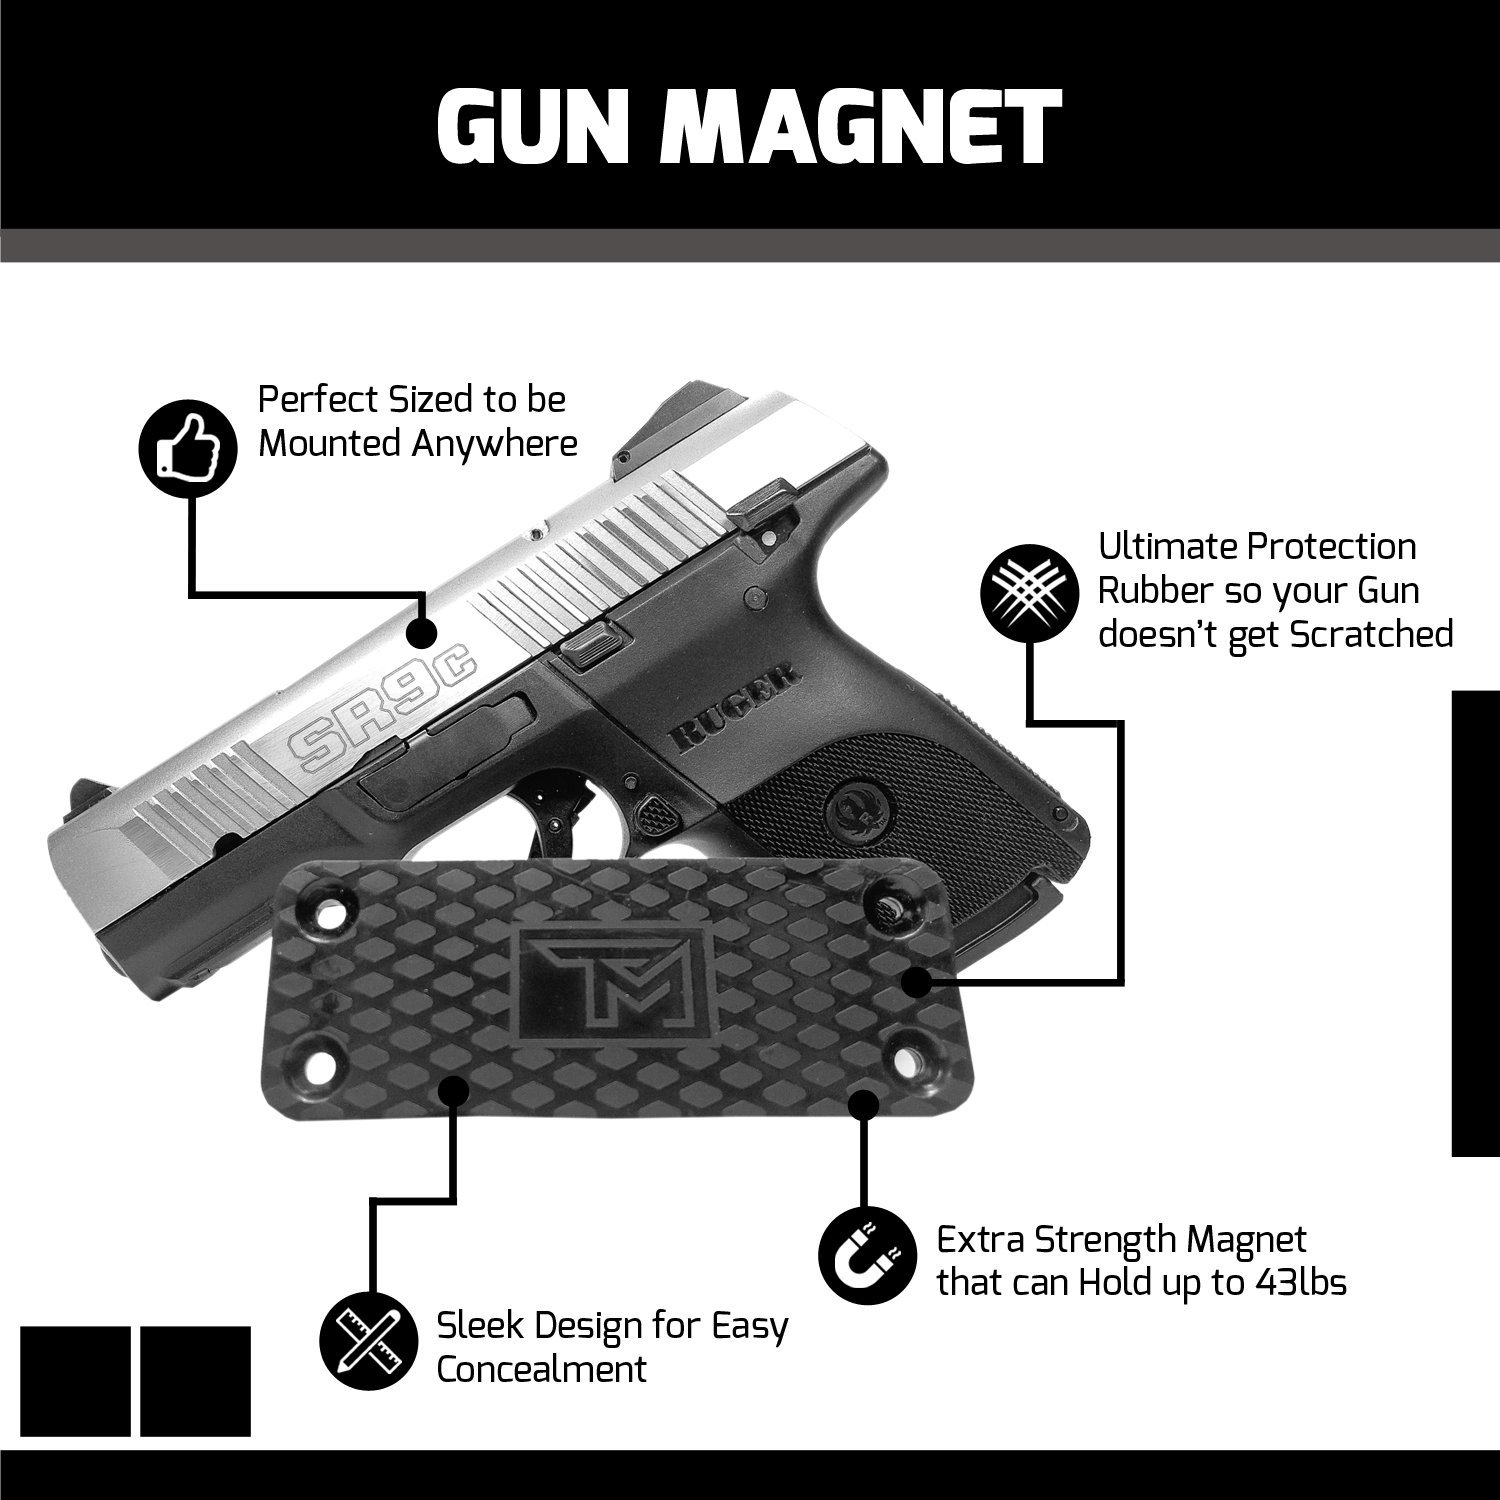 TM Outdoors Ultra-Powerful Ultra-Strong Hold Gun Magnet -Gun Accessory -Convenient and Sturdy Gun Storage  Organizer on Any Surface -Light to Heavy Gun Holder Up To 43 Pounds by TM Outdoors (Image #3)